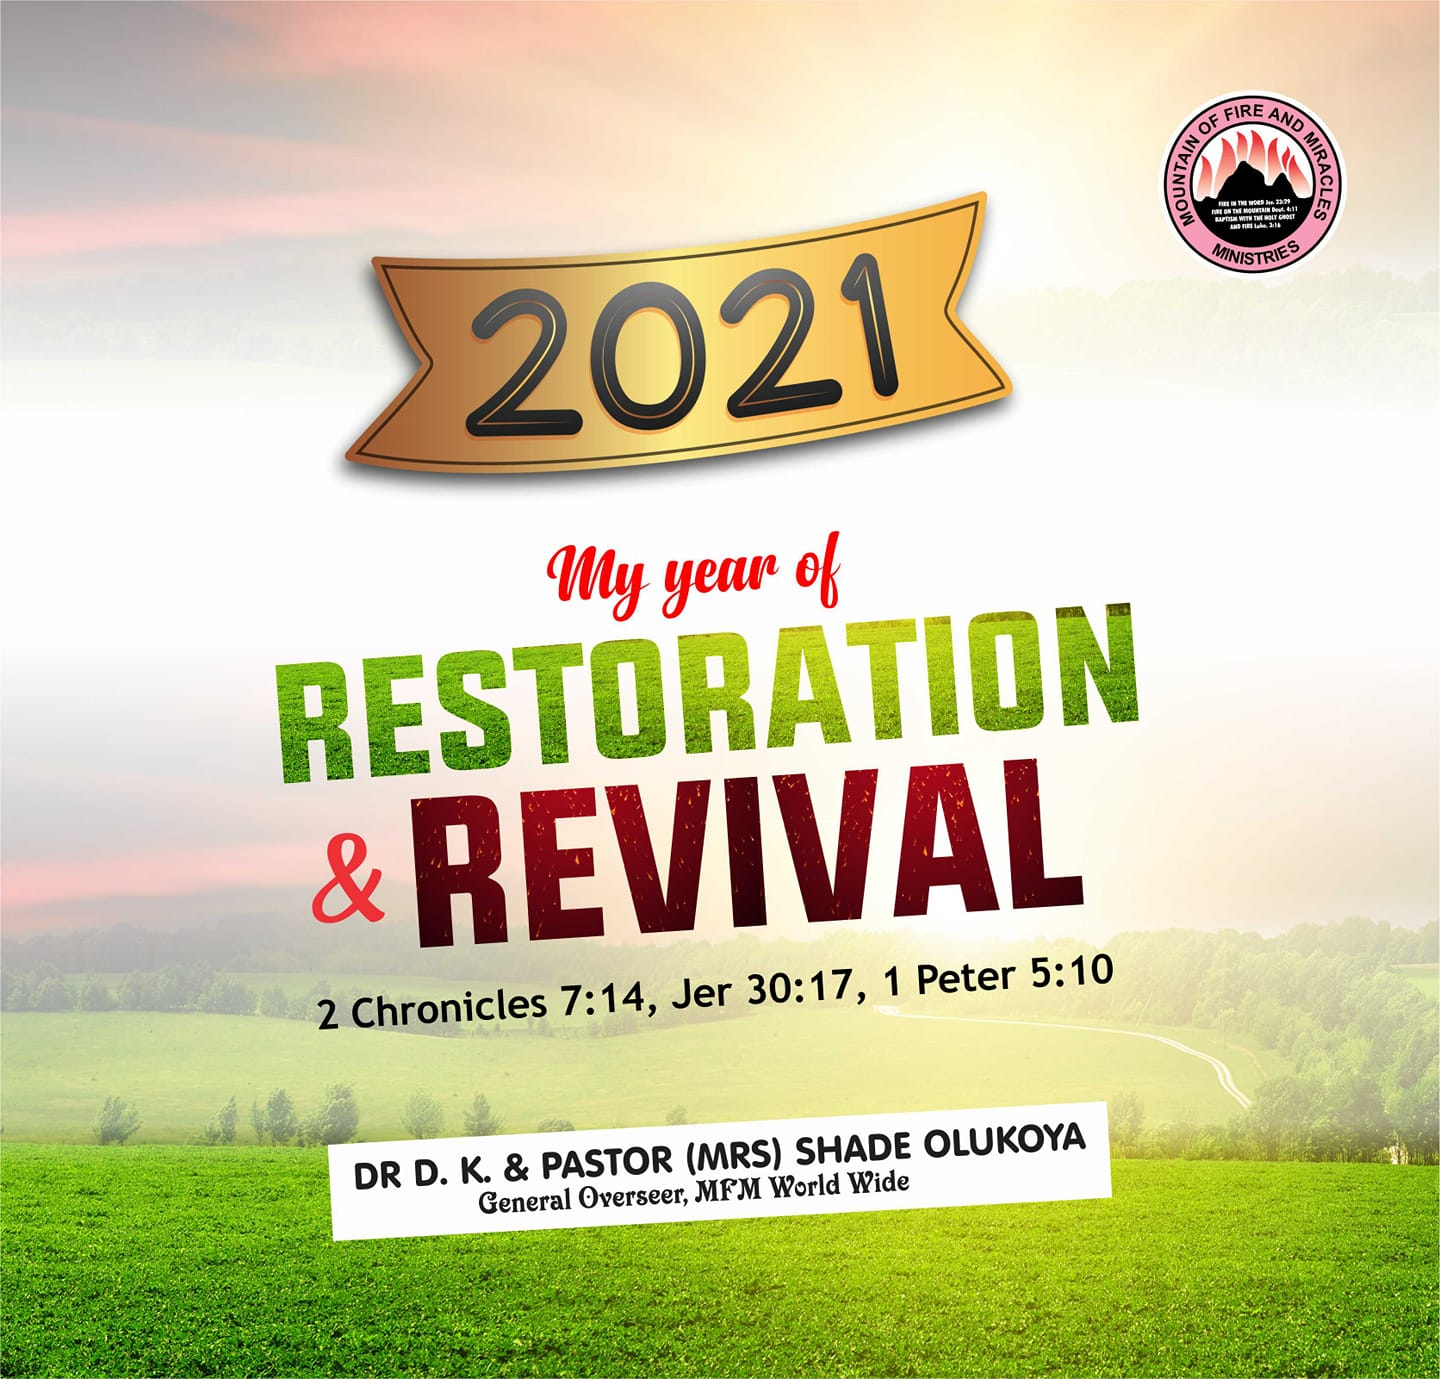 2021 Prophecies By Dr Daniel Olukoya Of Mountain Of Fire And Miracles Ministries